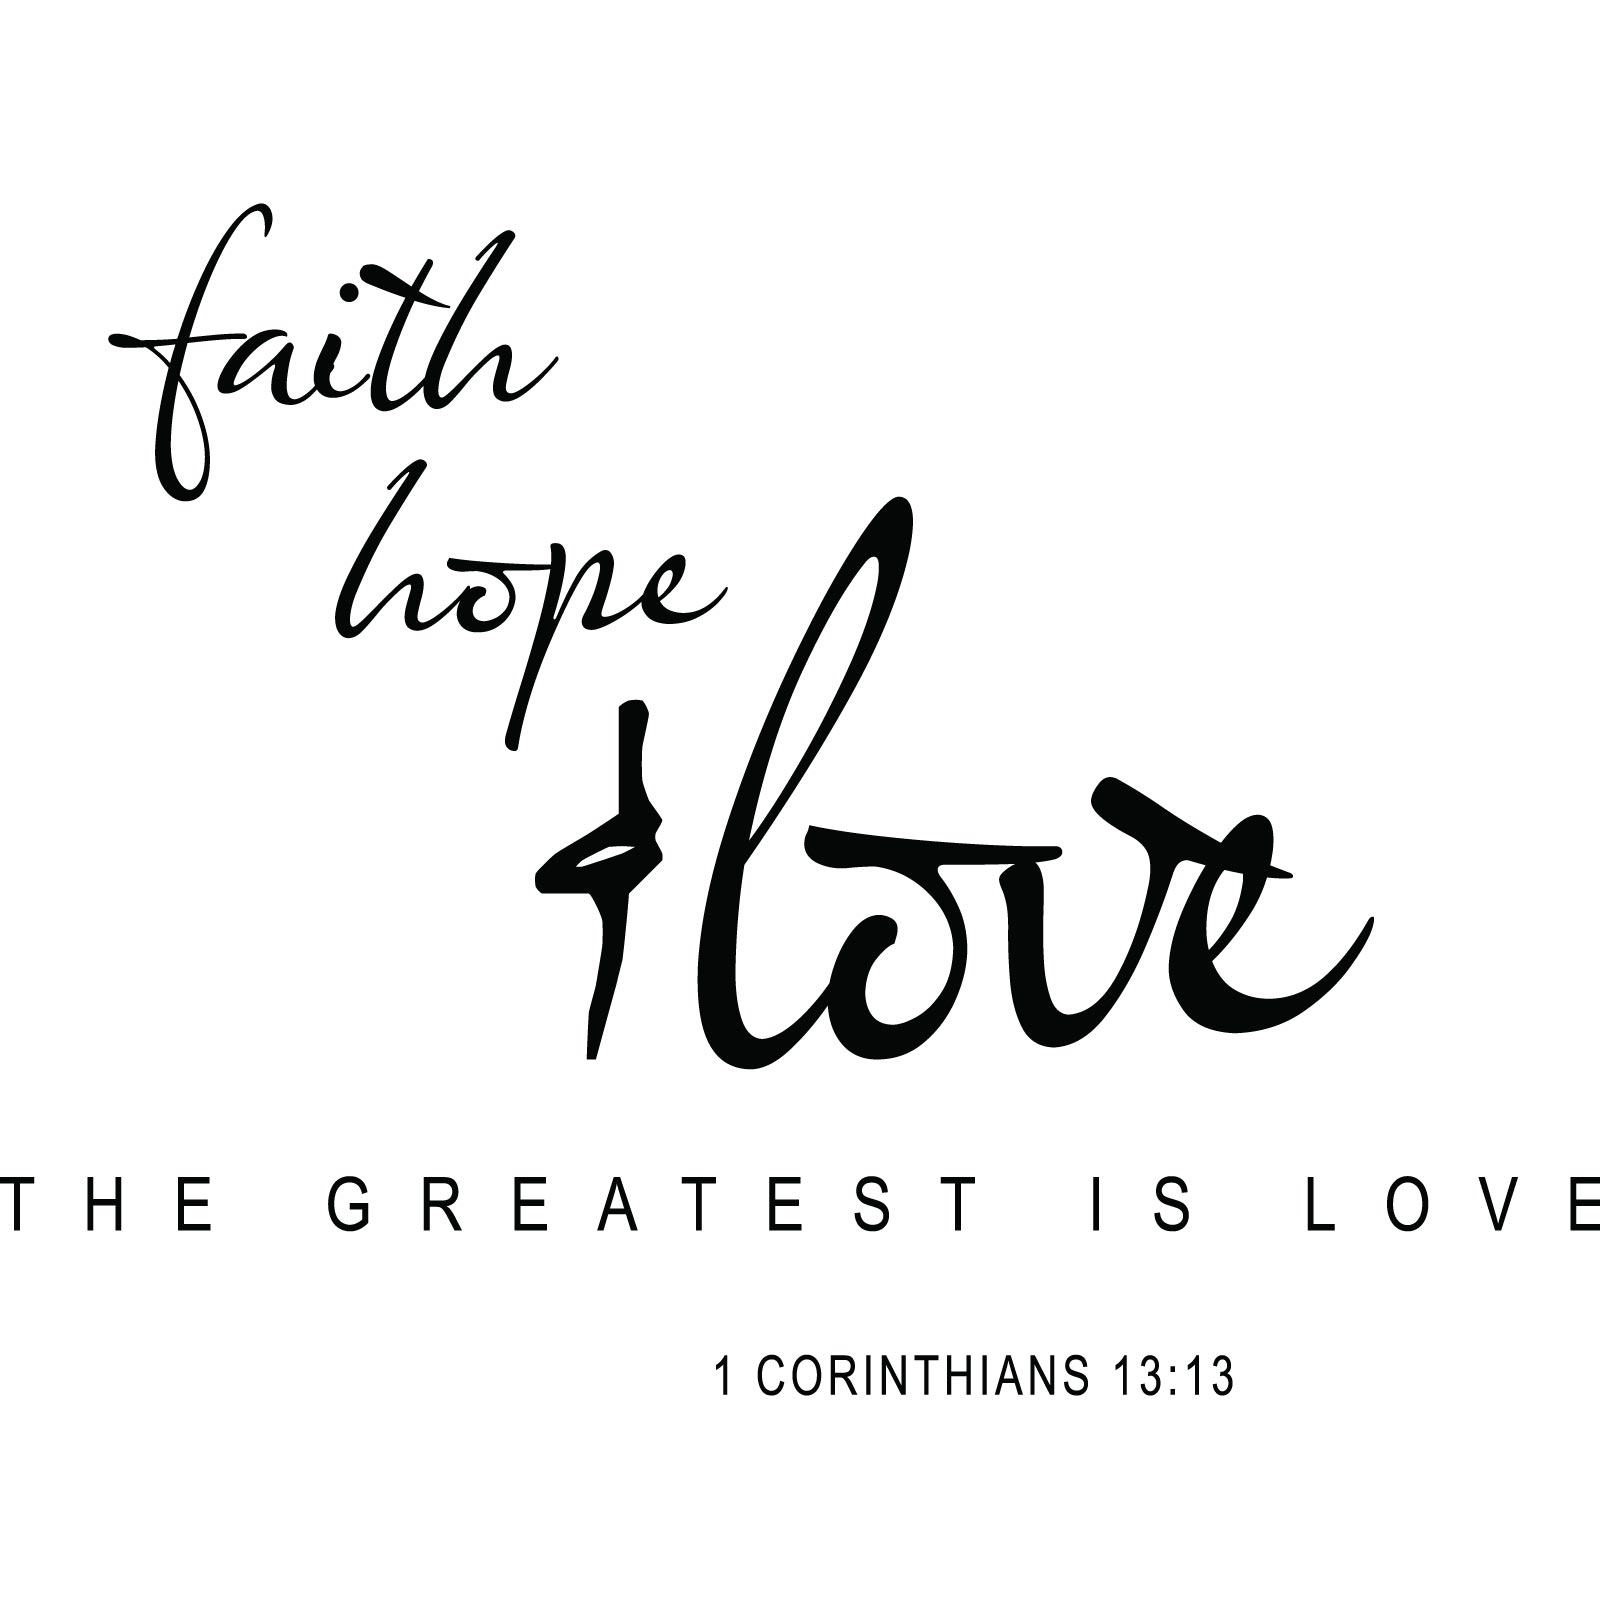 Religious Quotes About Love Simple Faith Hope Love Religious Quote Wall Sticker  World Of Wall Stickers